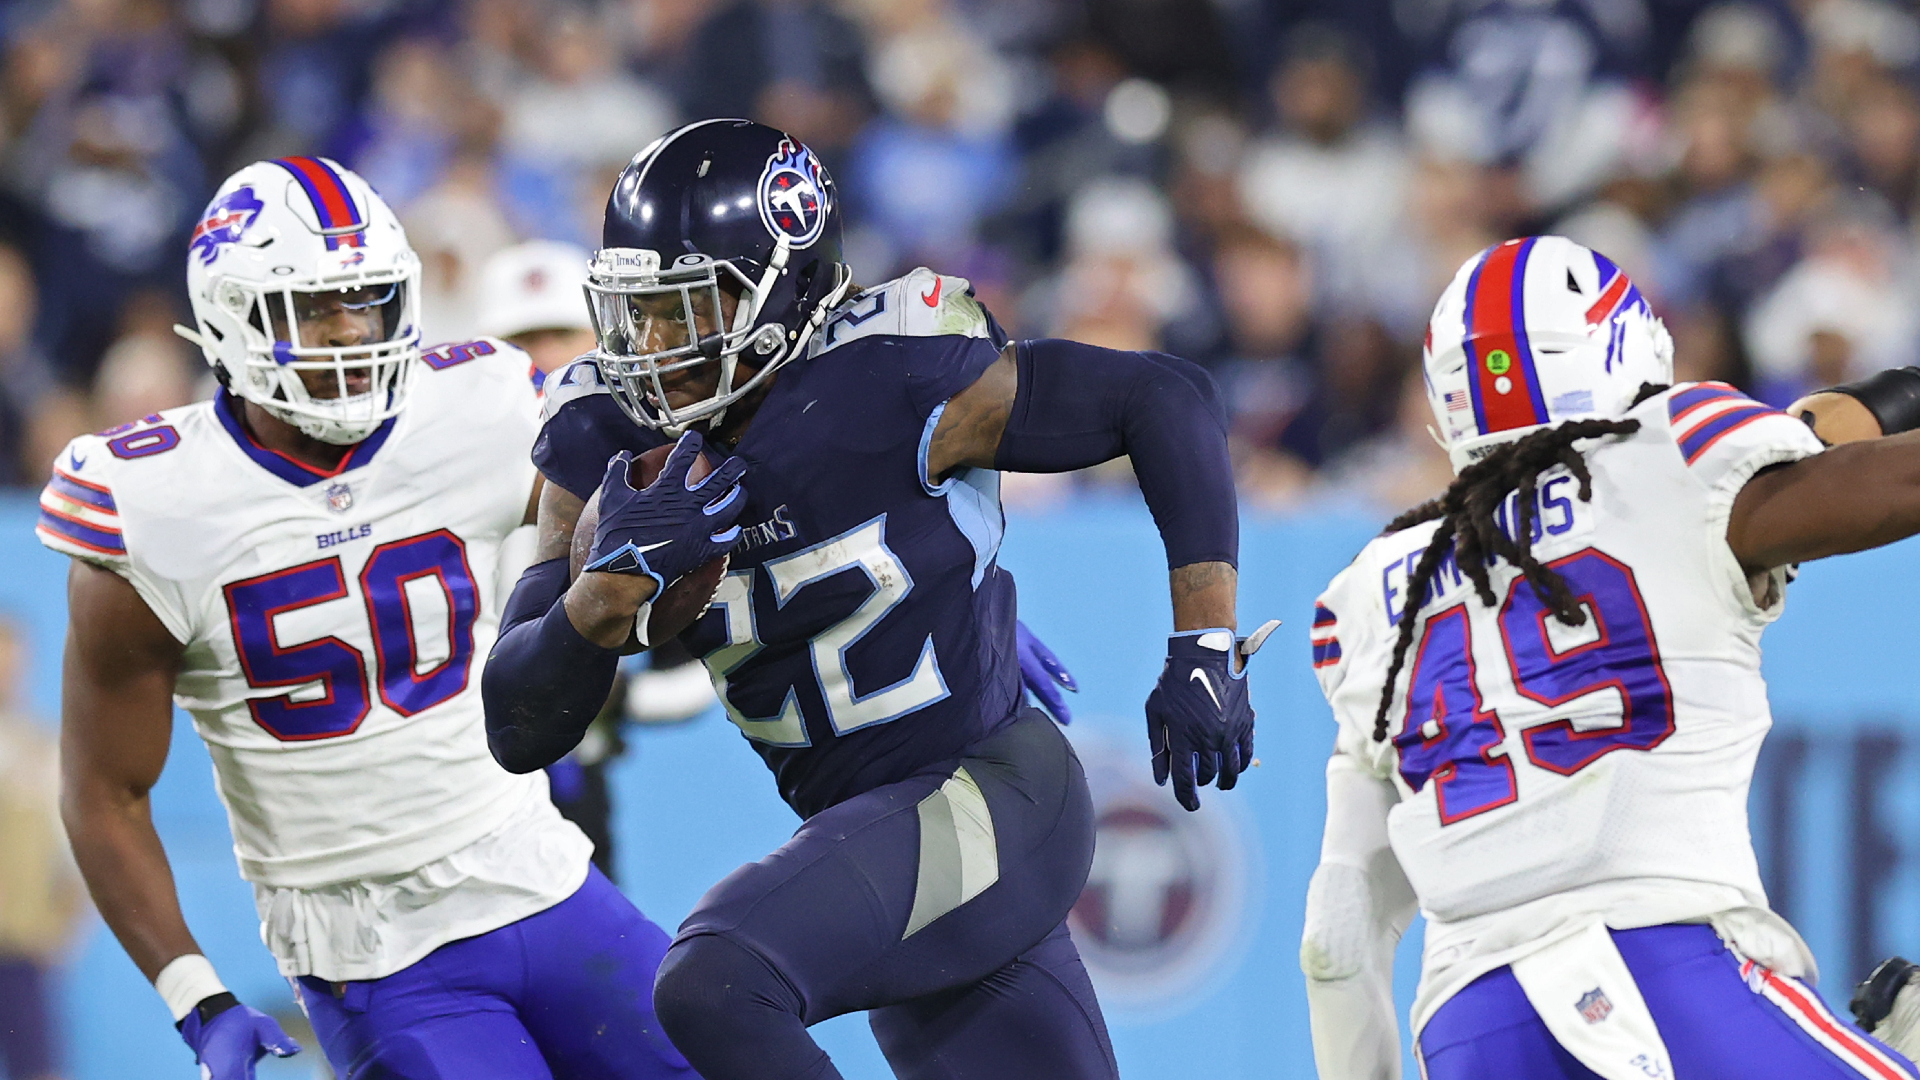 Titans' Derrick Henry became NFL's fastest player of 2021 with 76-yard touchdown vs. Bills